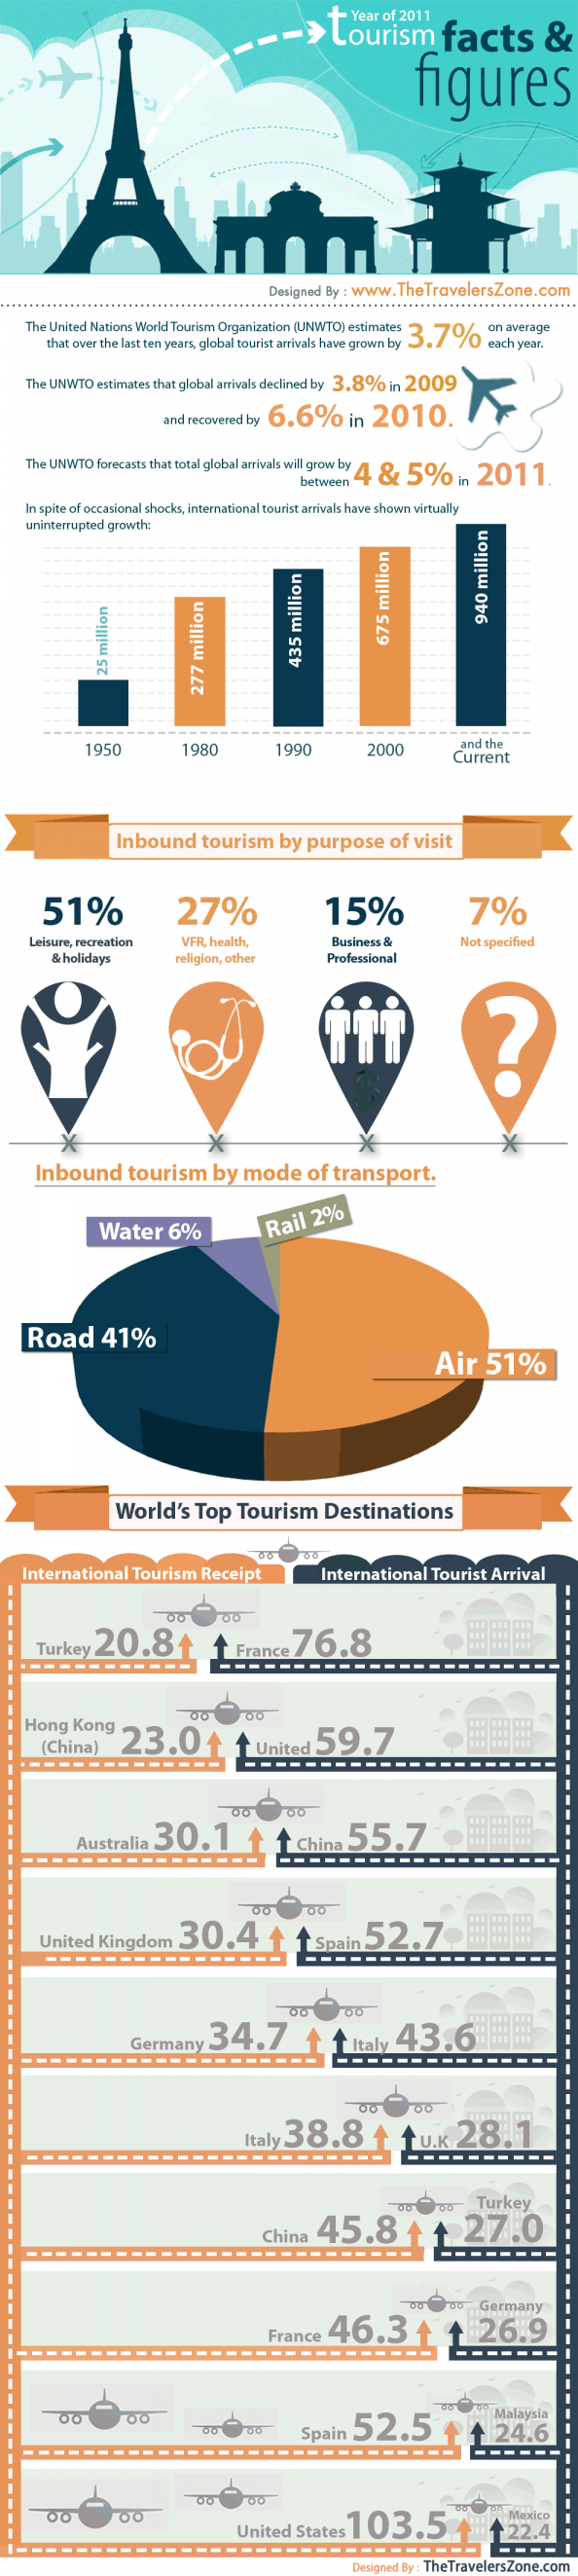 World Tourism Facts and Figures in 2011 Infographic